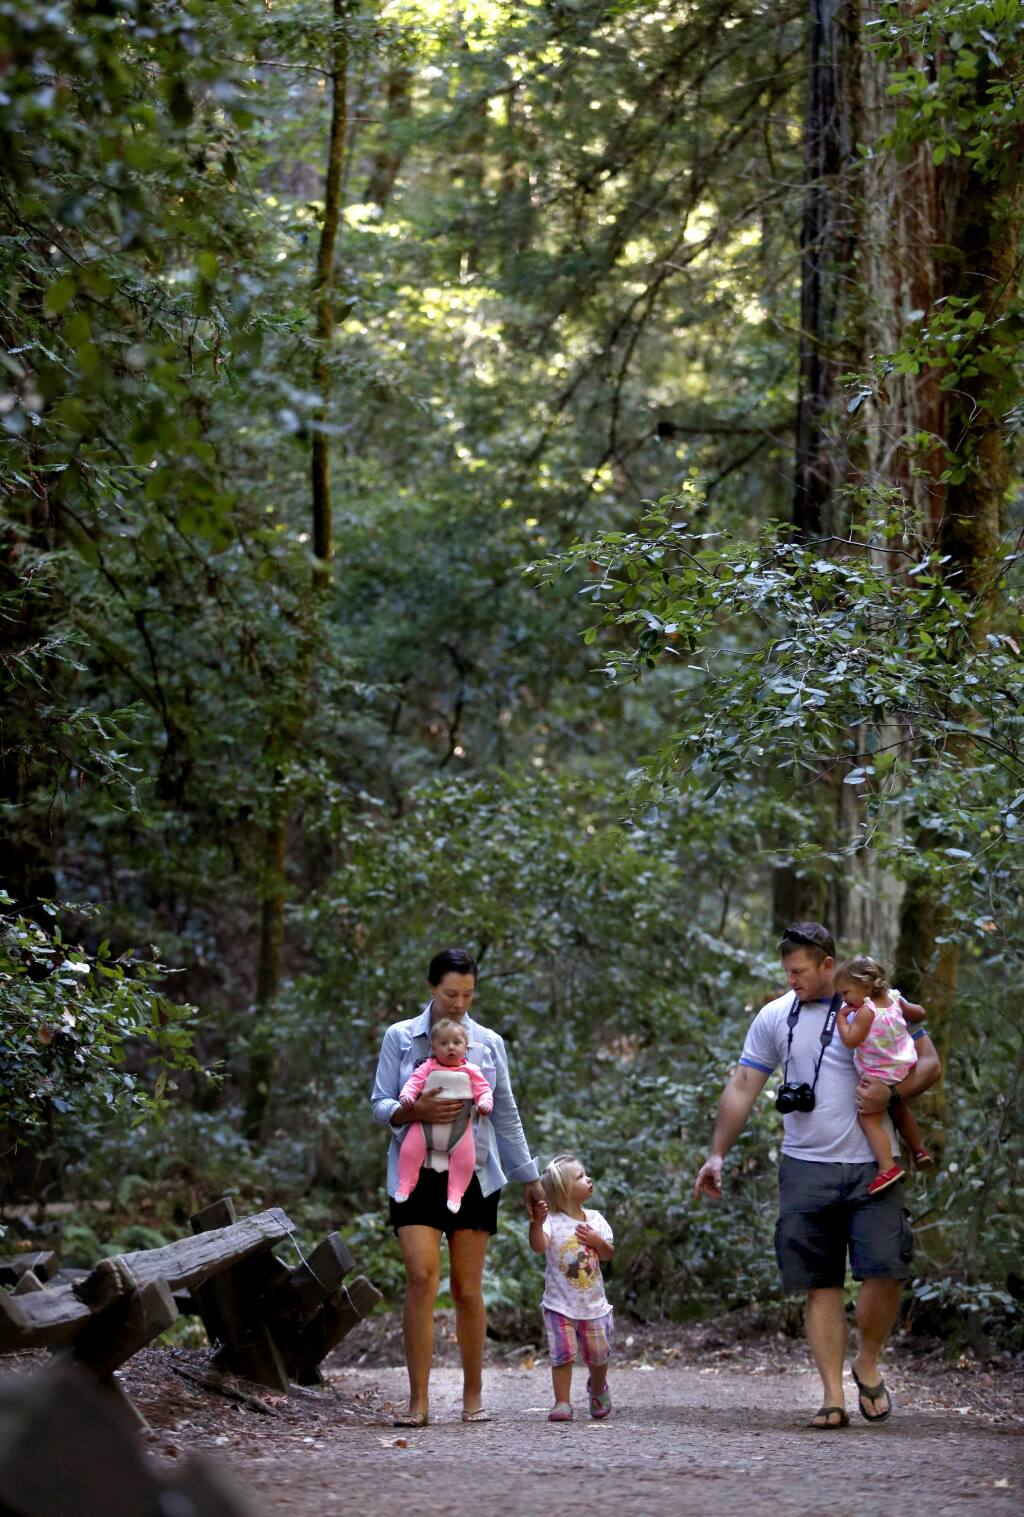 Kelly Norris, her husband, Bryan, and their three daughters Laila, 2, center, Kinley, 1, right, and Hannah, 6-months, walk together at Armstrong Woods State Natural Reserve in Guerneville, California on Sunday, October 5, 2014. (BETH SCHLANKER/ The Press Democrat)